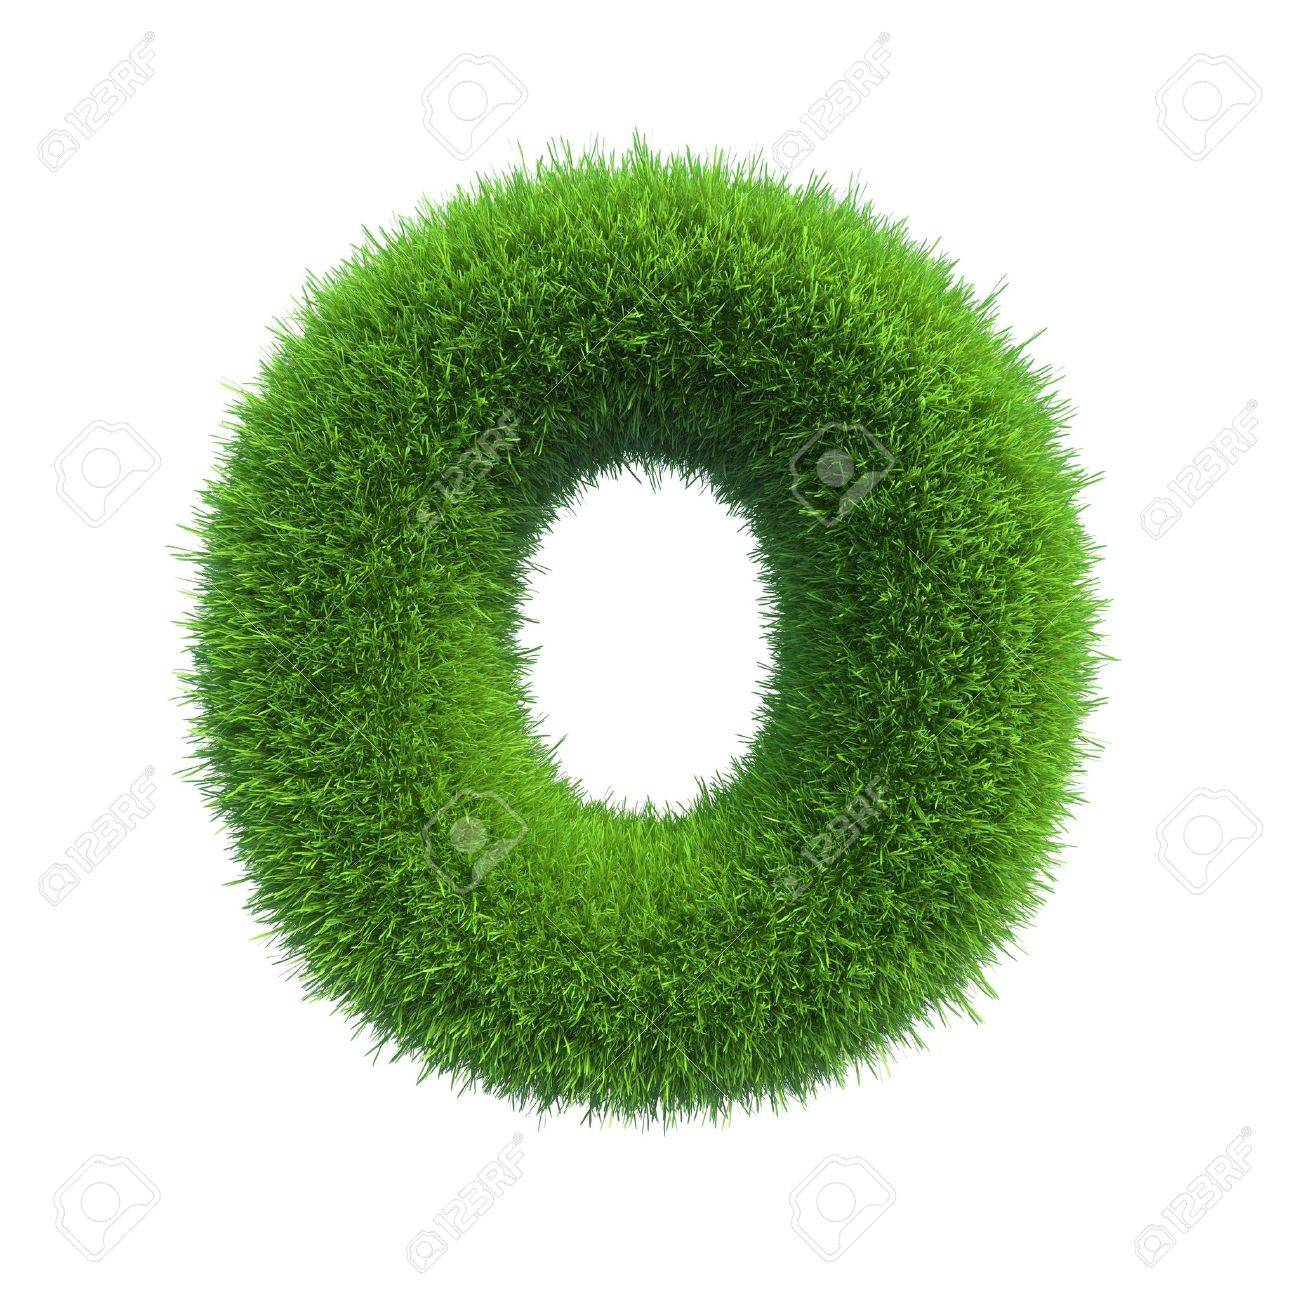 Letter of green fresh grass isolated on a white background - 34449025